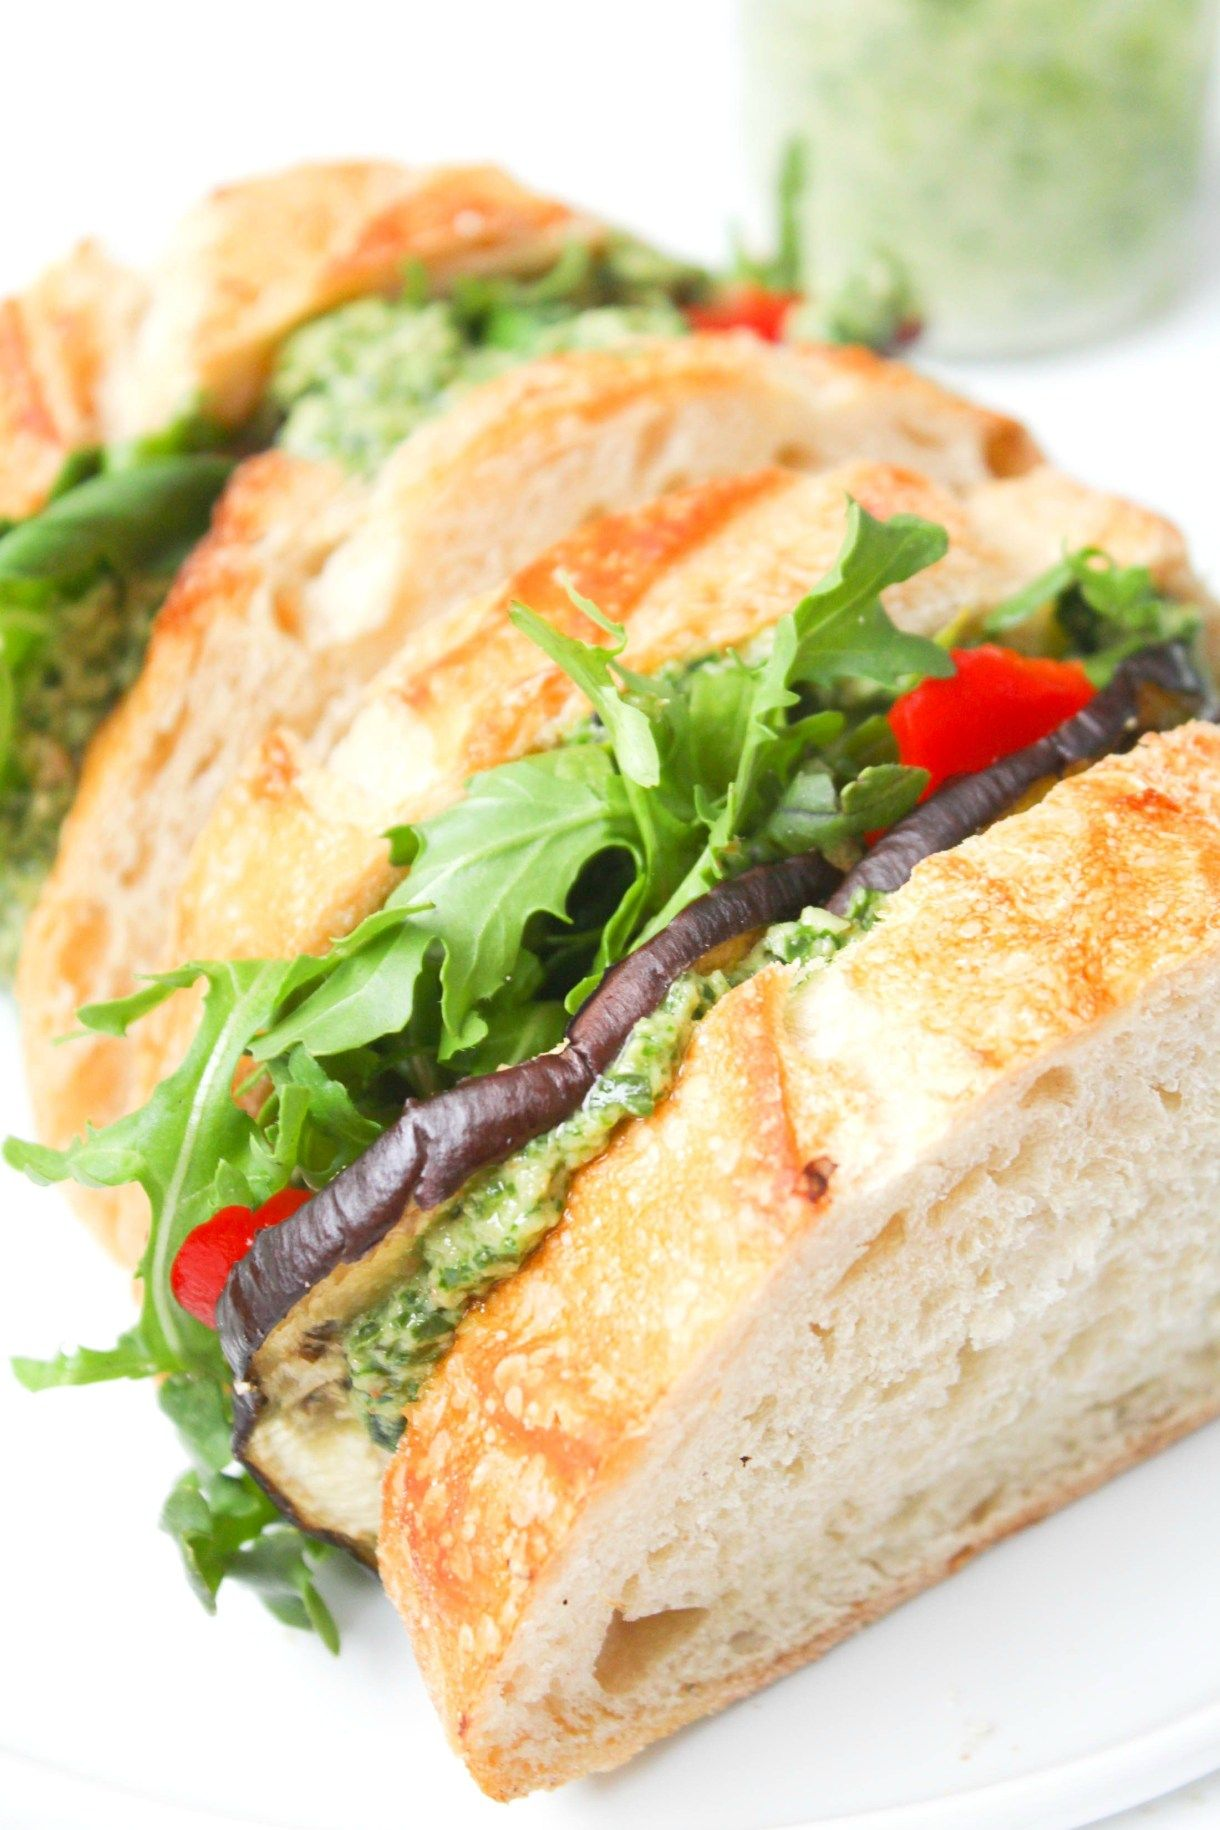 Roasted Eggplant Sandwiches With Vegan Arugula Walnut Pesto